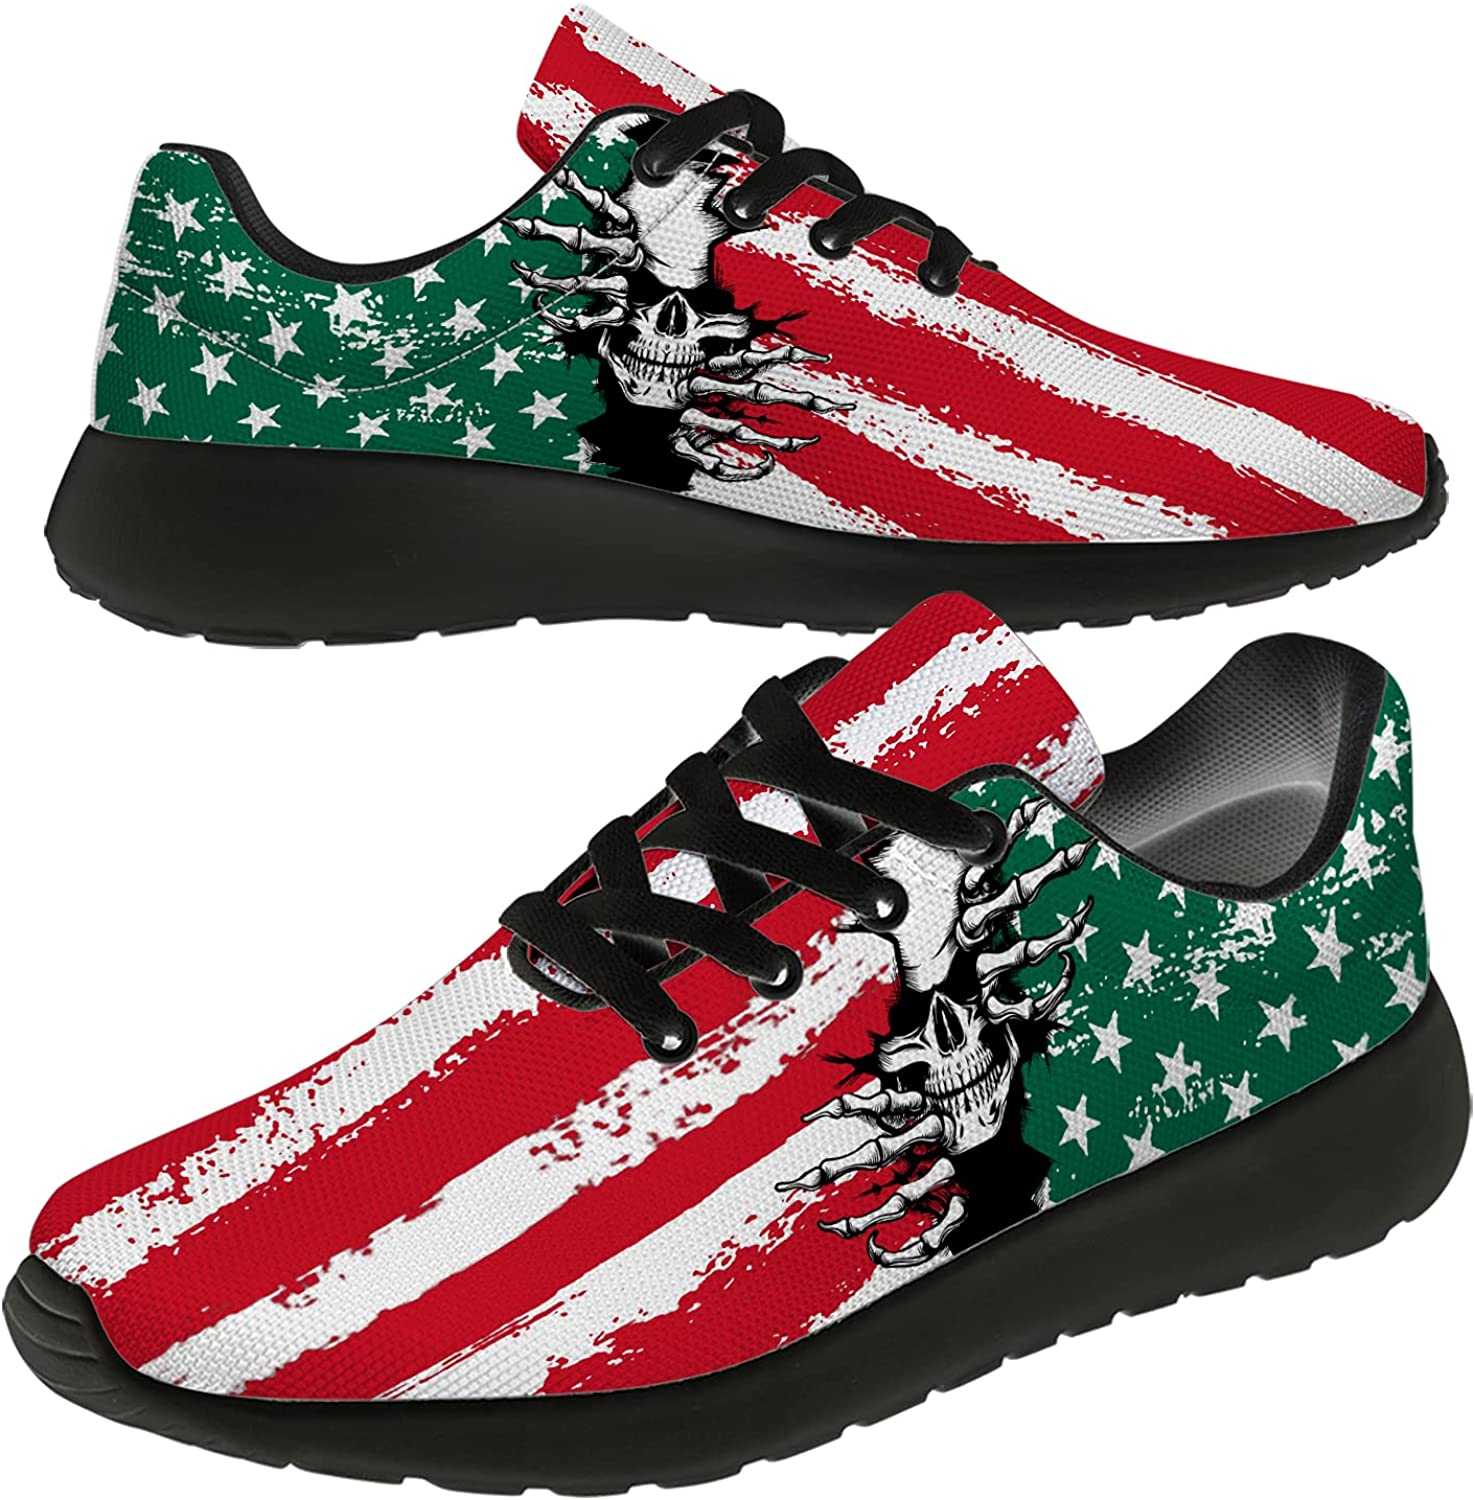 Uminder Mexico Flag Shoes for Men Outlet ☆ Free Shipping Women Fashion L Ultra Manufacturer OFFicial shop Sneakers